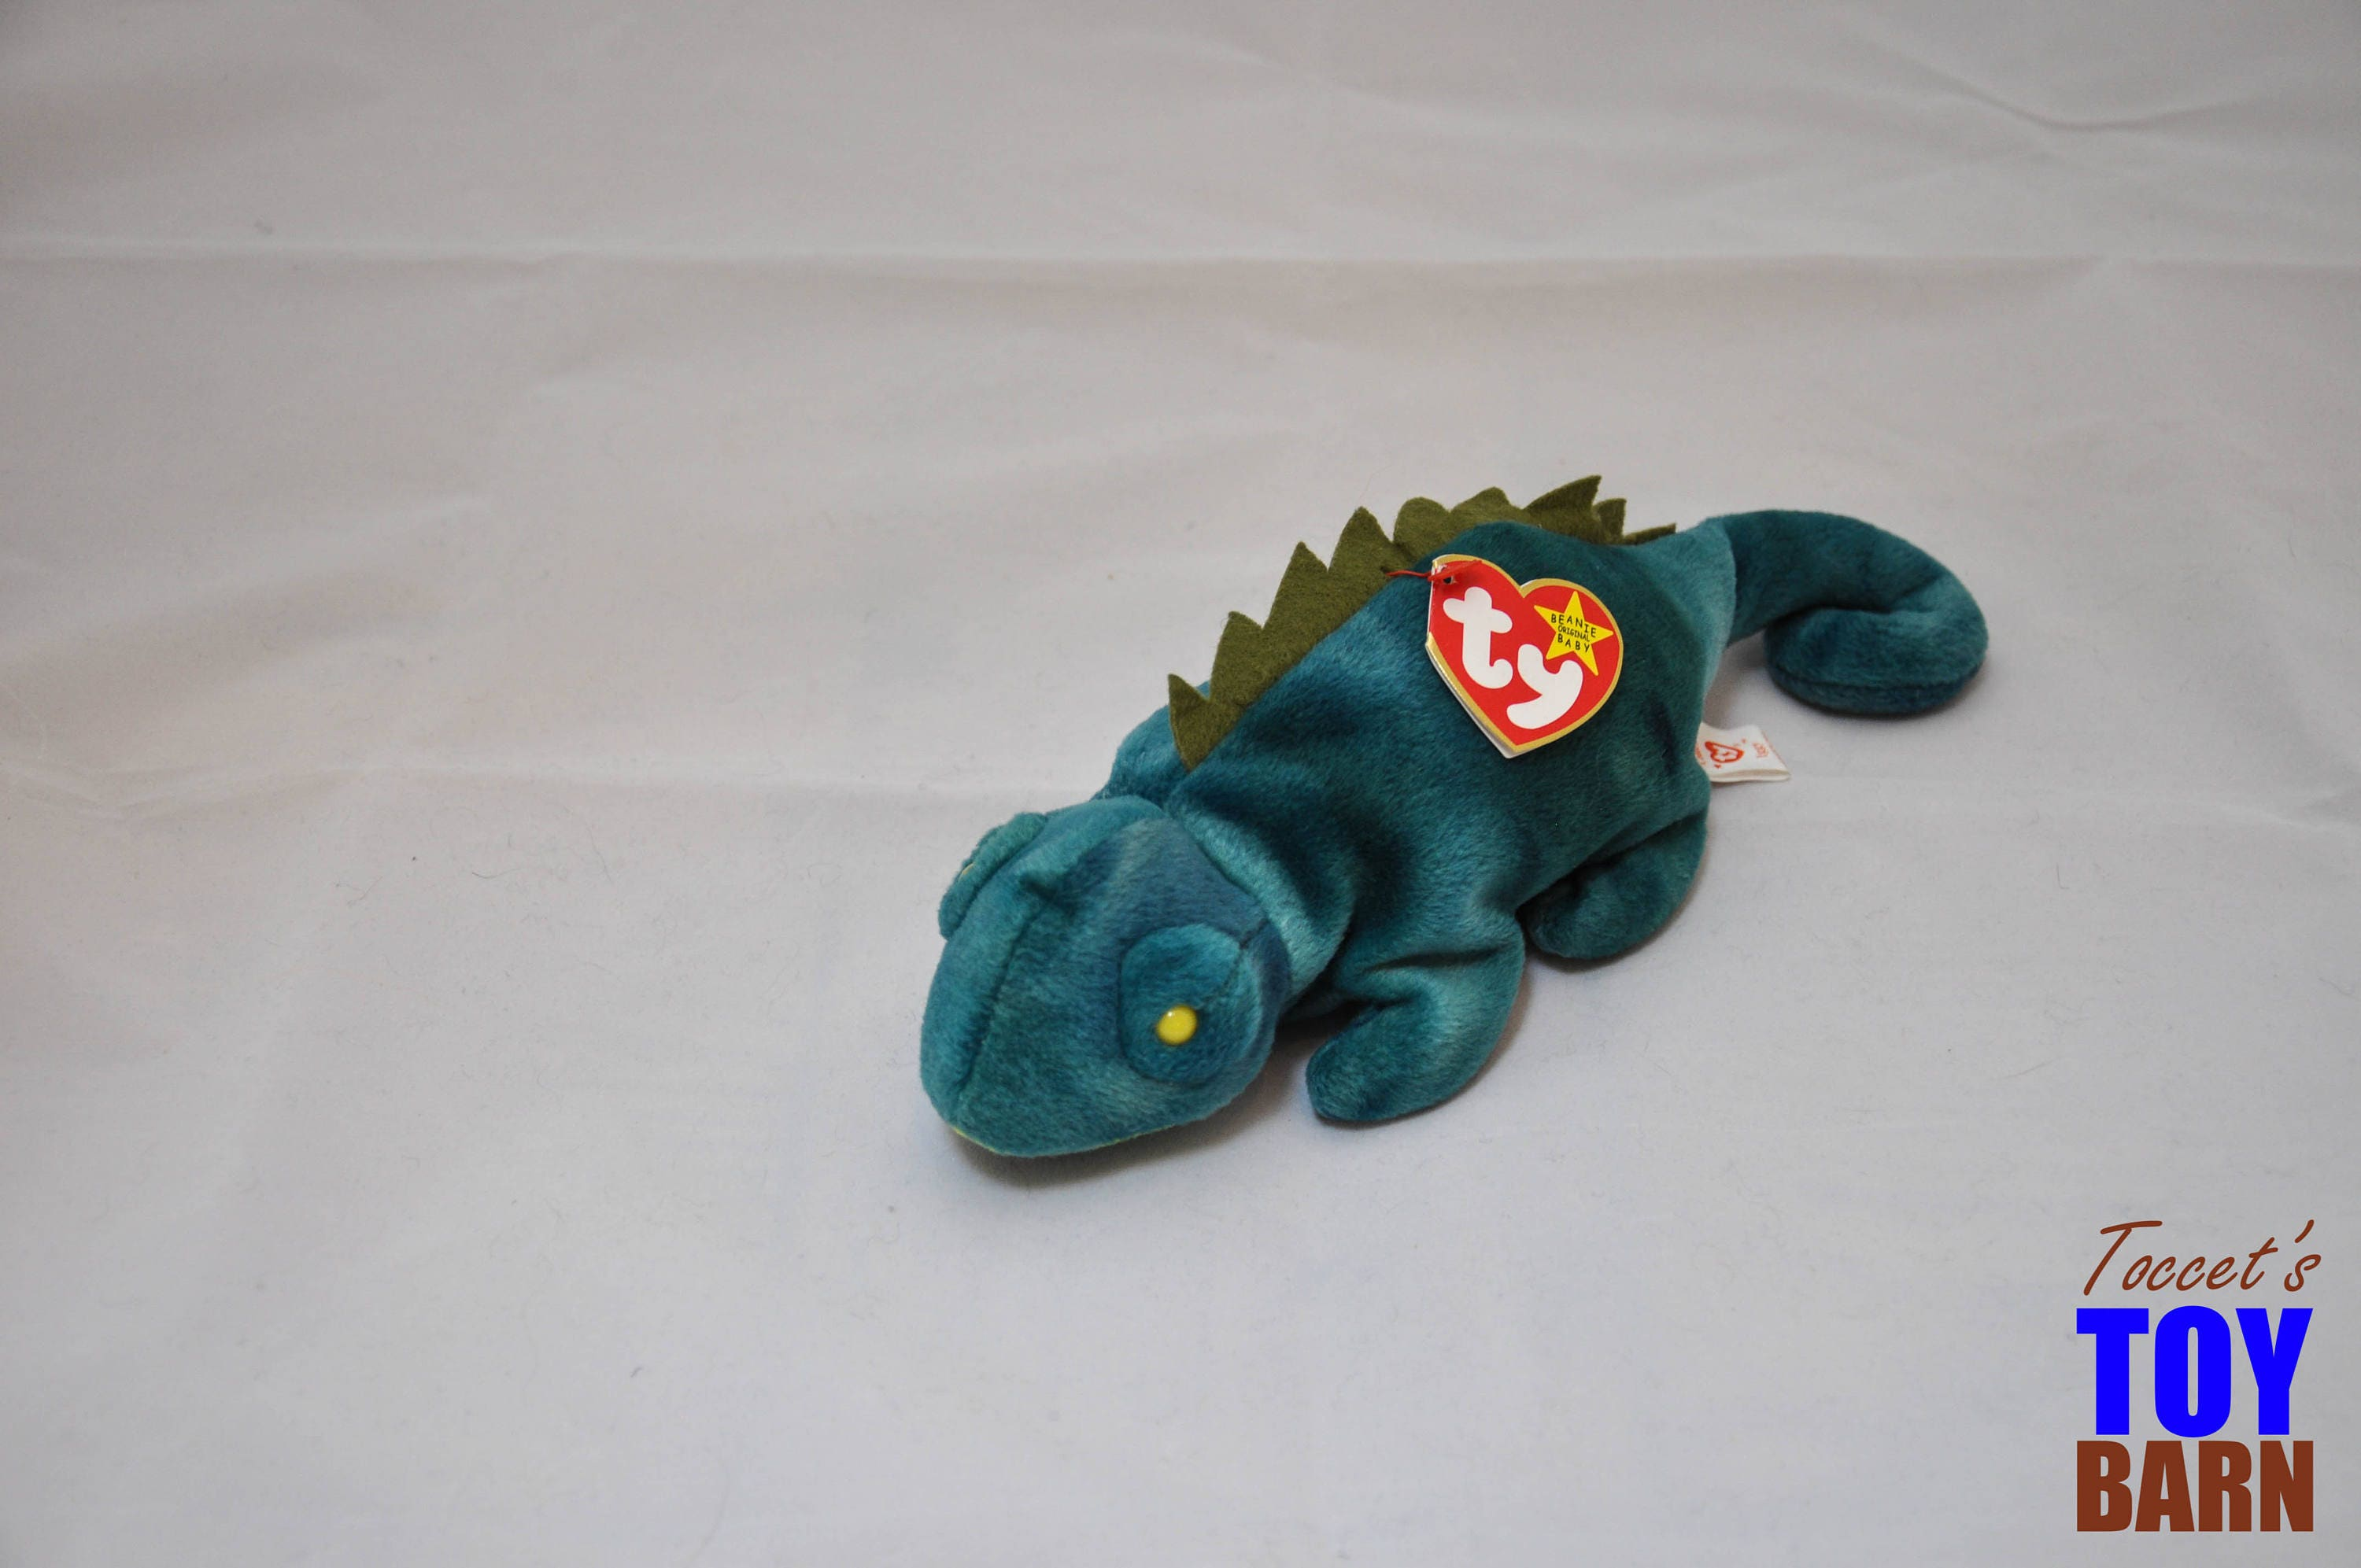 874221d2200 Iggy the Iguana  Vintage 1997 Ty Beanie Baby (Green Coat) and 1997 ...